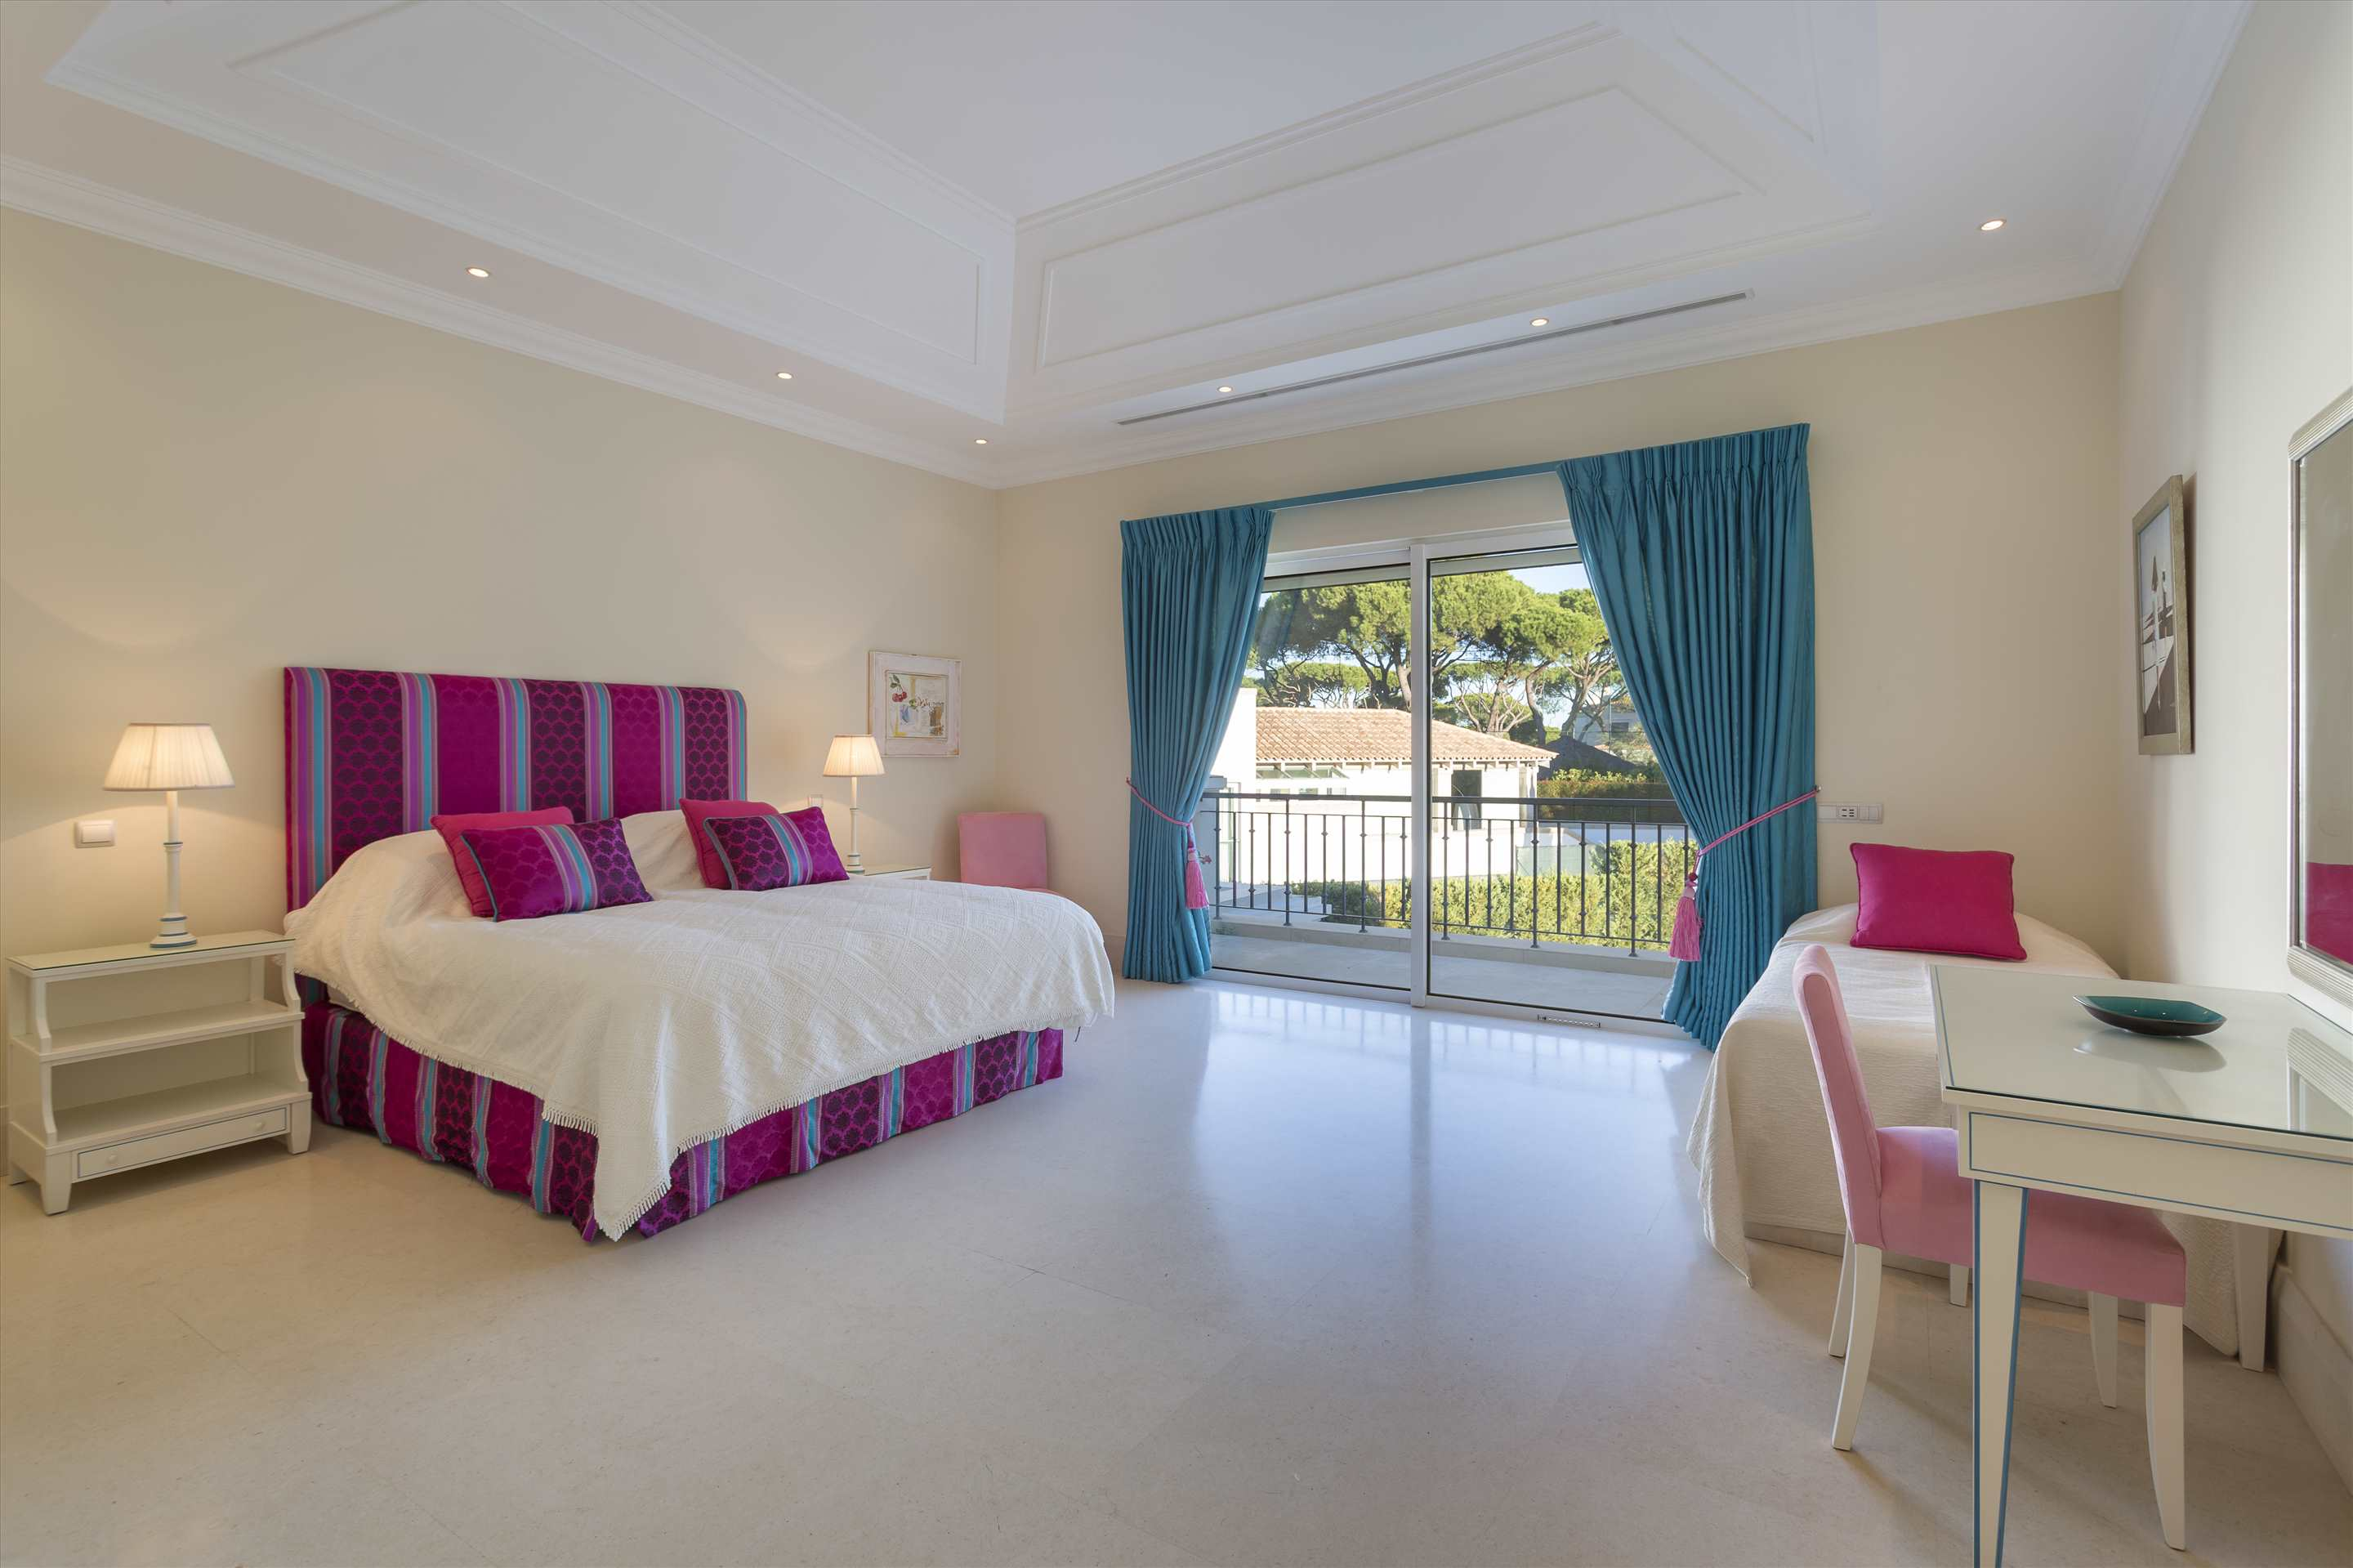 Villa Belissima, 5 bedroom villa in Vale do Lobo, Algarve Photo #26